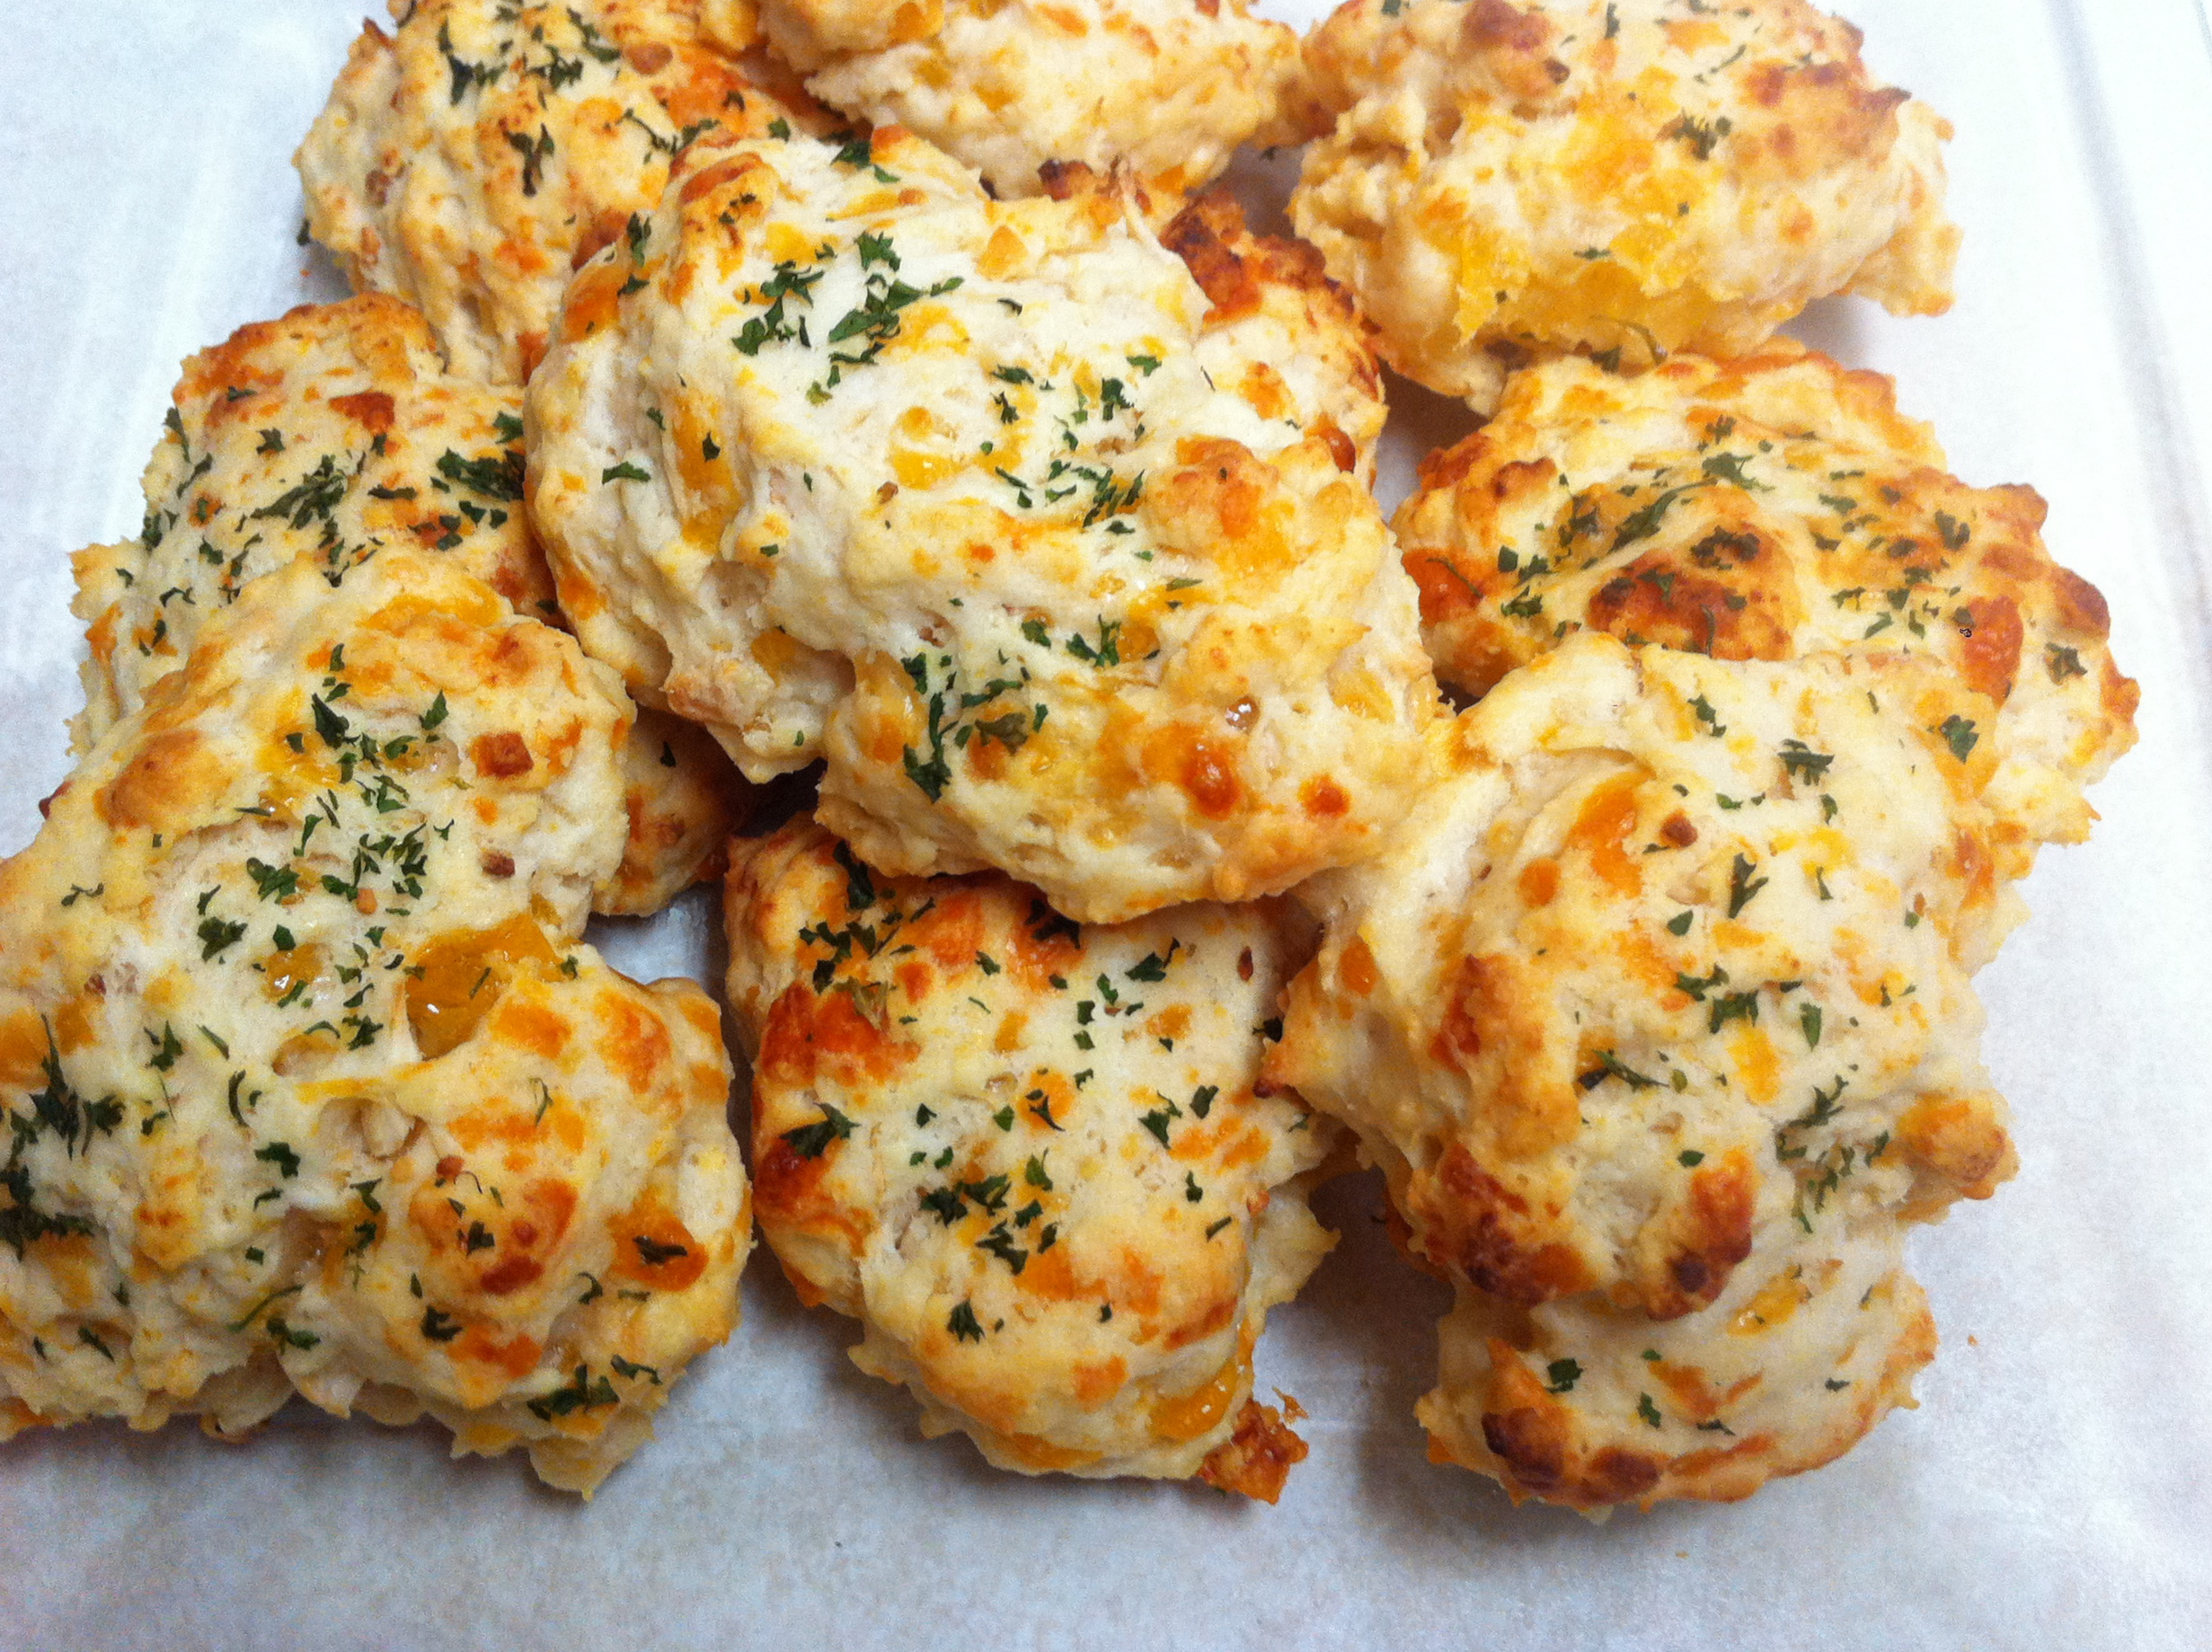 biscuits cheddar and jalapeno biscuits cheddar bacon biscuits cheddar ...